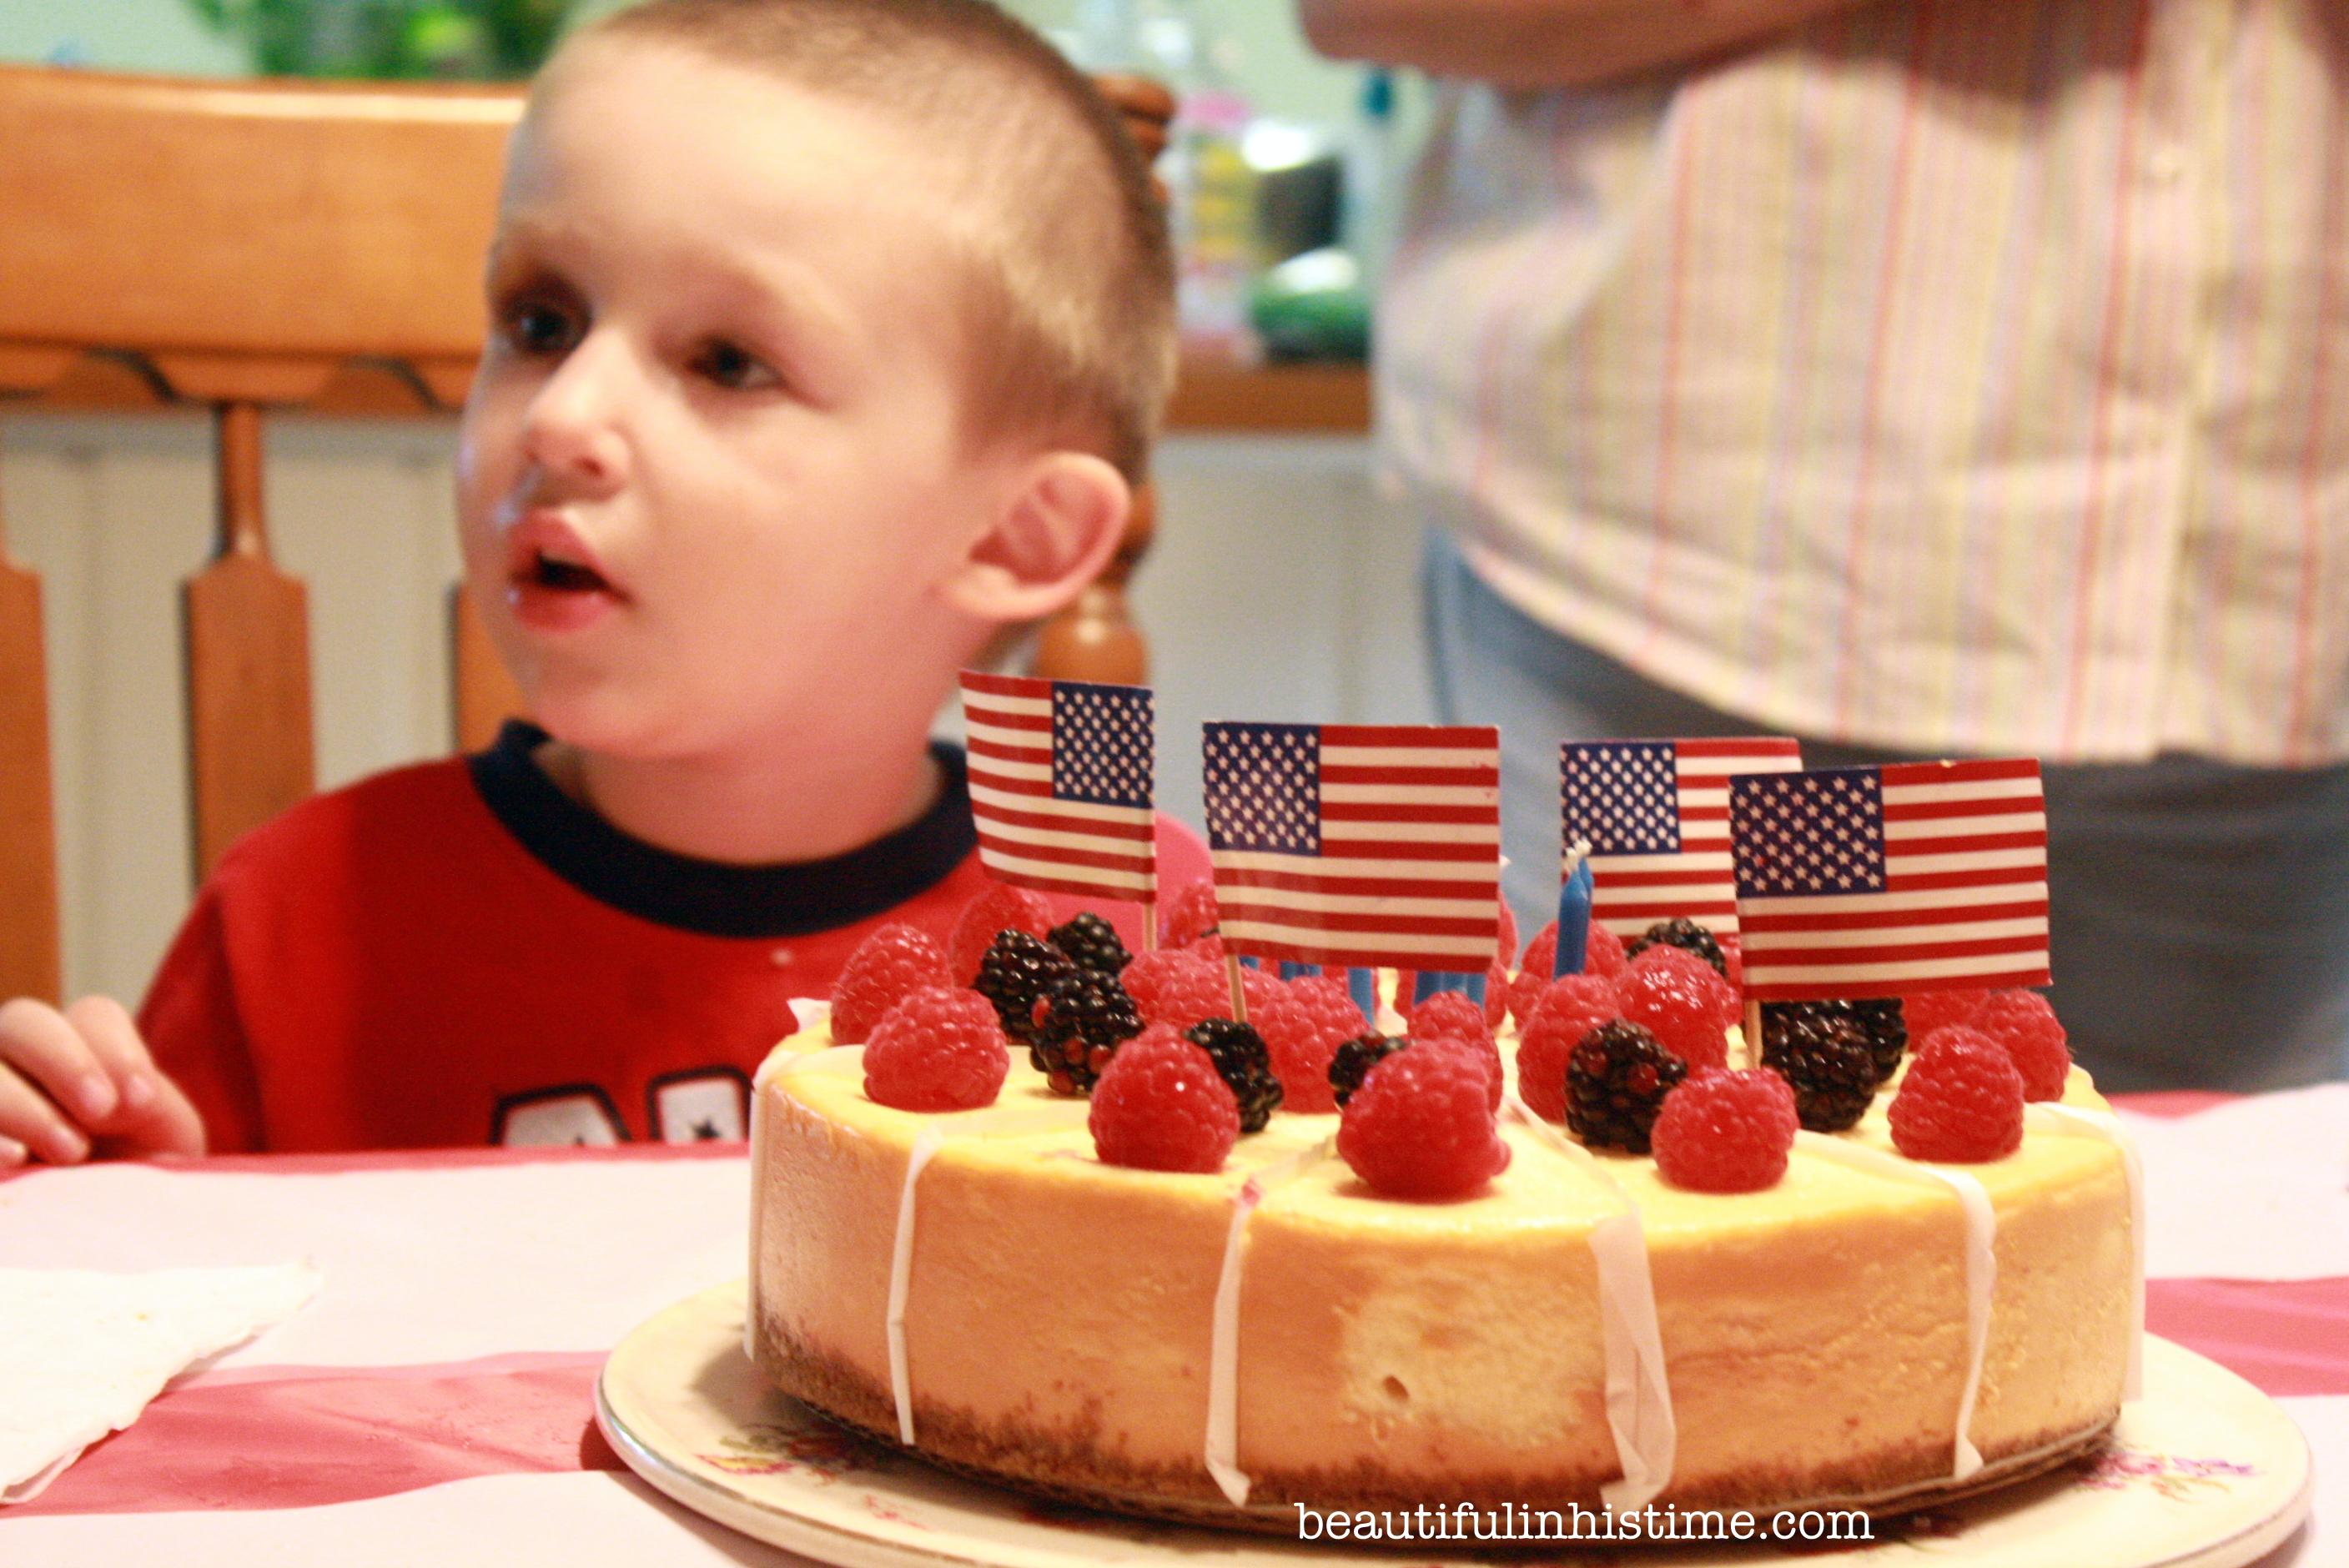 A Birthday Party for America! #birthday #america #4thofjuly #independenceday #party #birthdayparty #birthdaycake